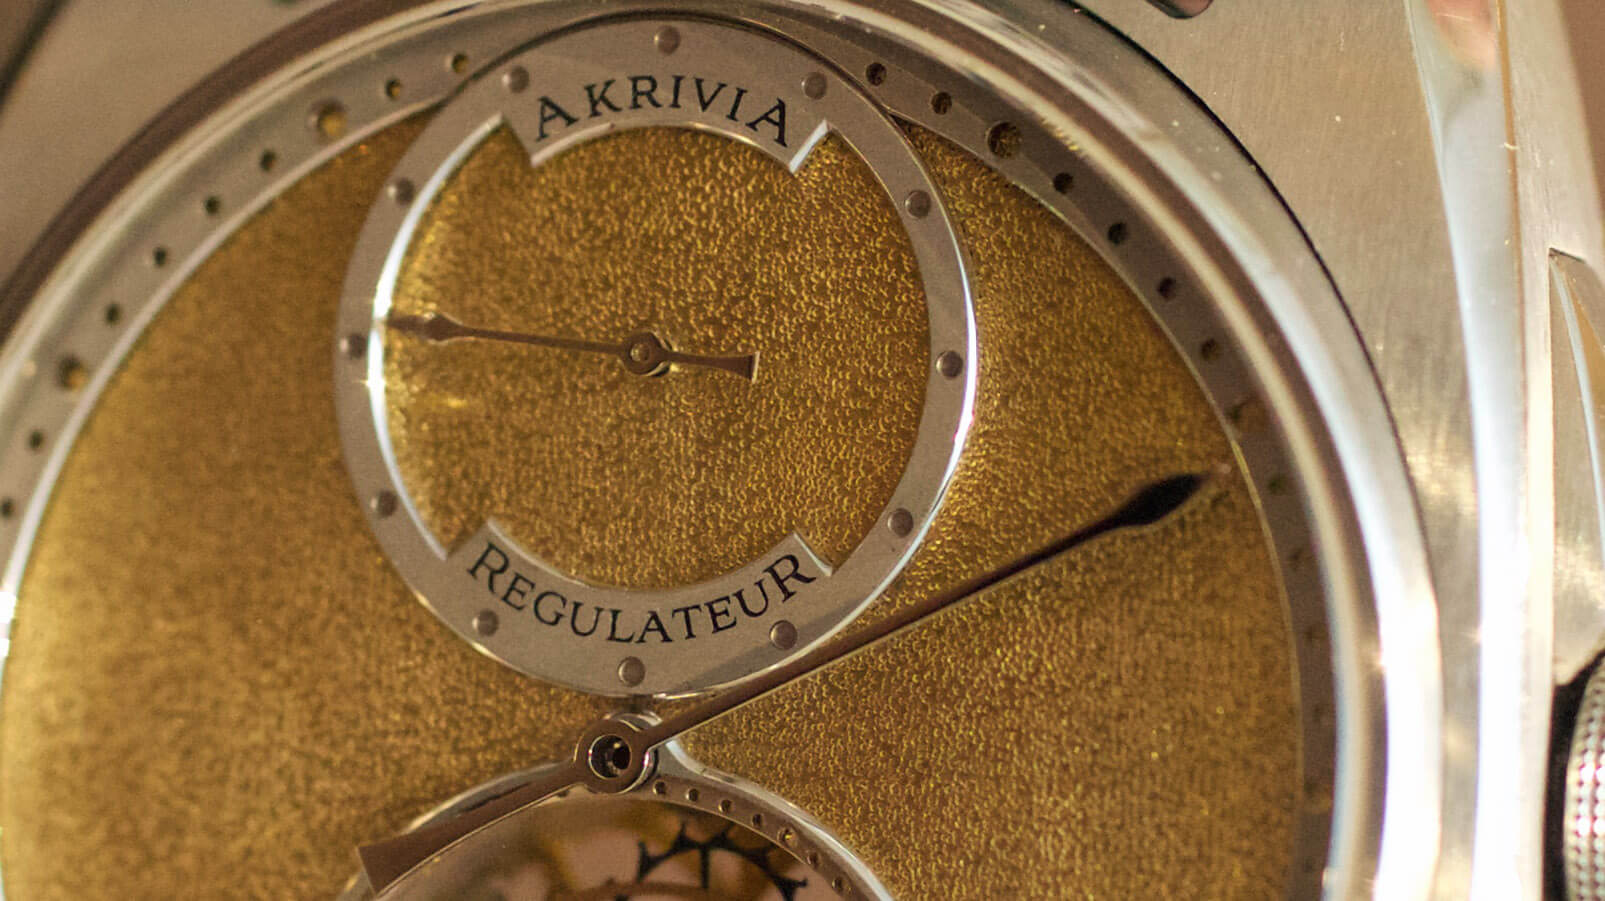 Akrivia watches, Geneva